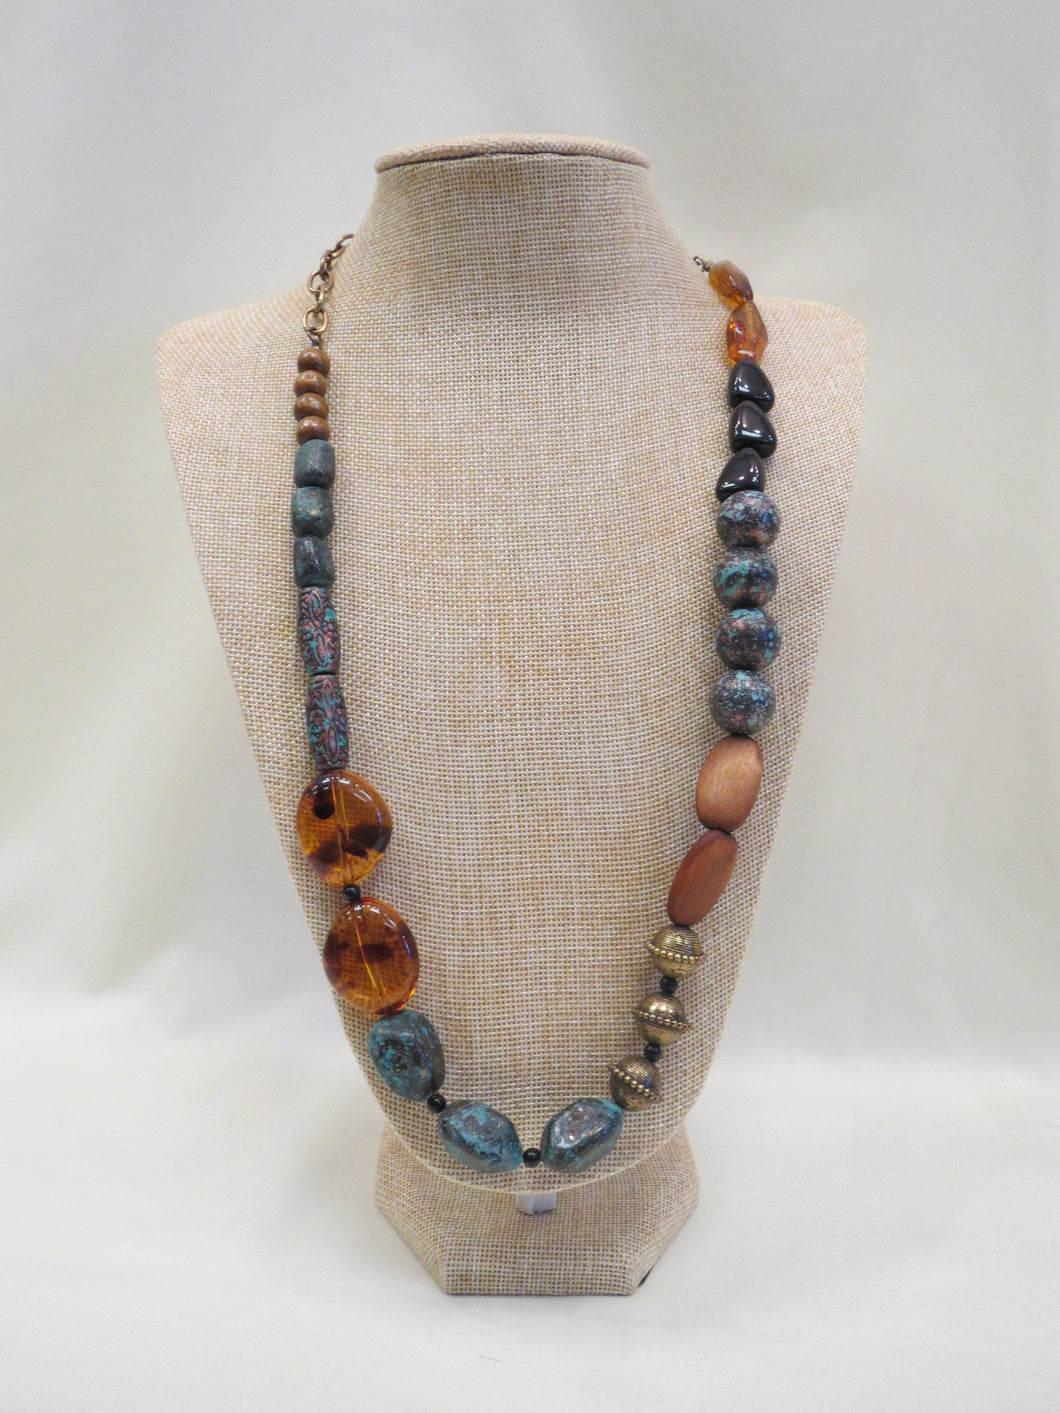 ADO Turquoise & Wood Beaded Necklace | All Dec'd Out